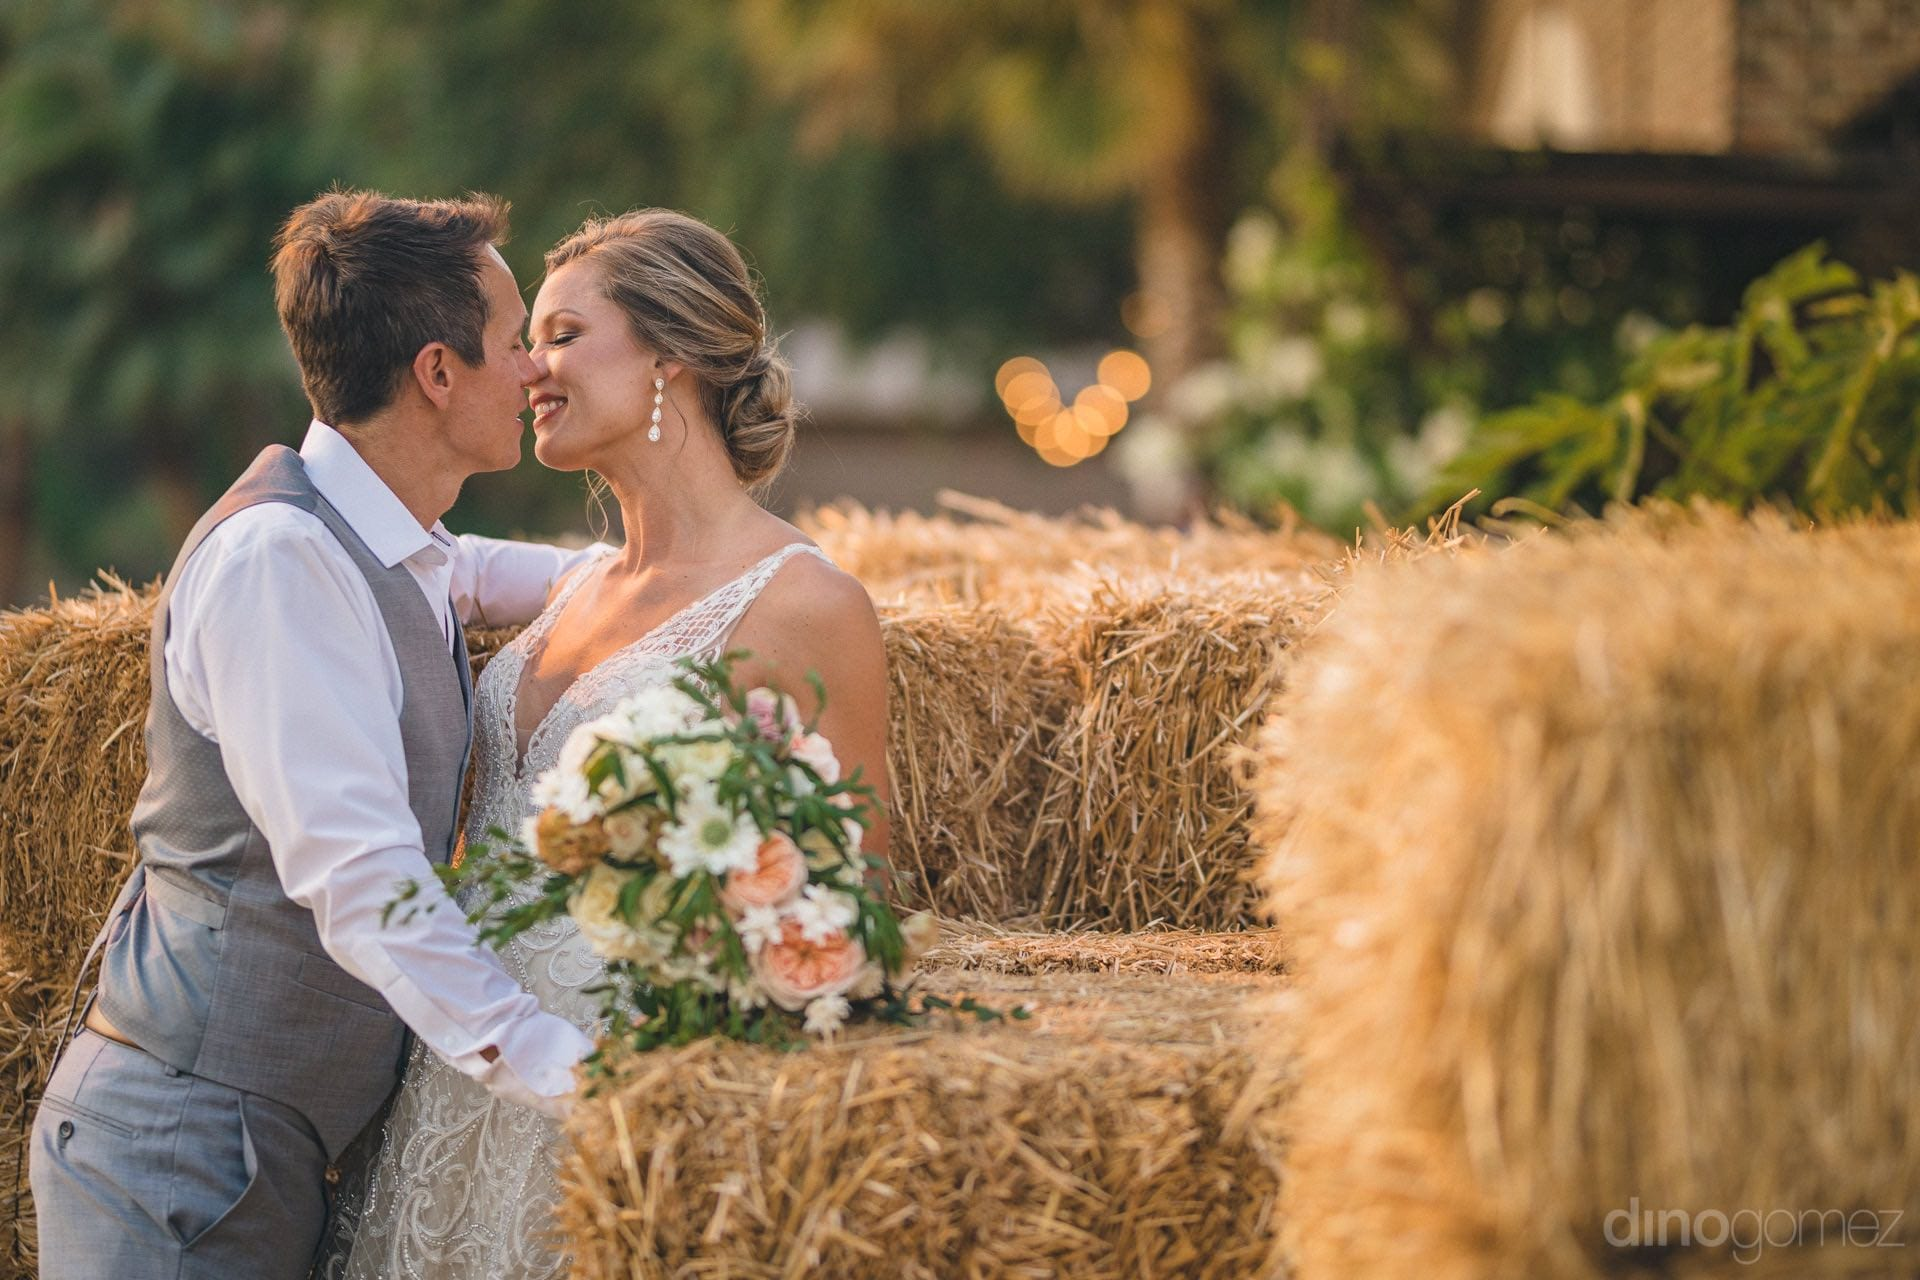 Lovely newly married husband and wife are standing taking rest on the hay bundles and are about to kiss each other- Heather & Ross